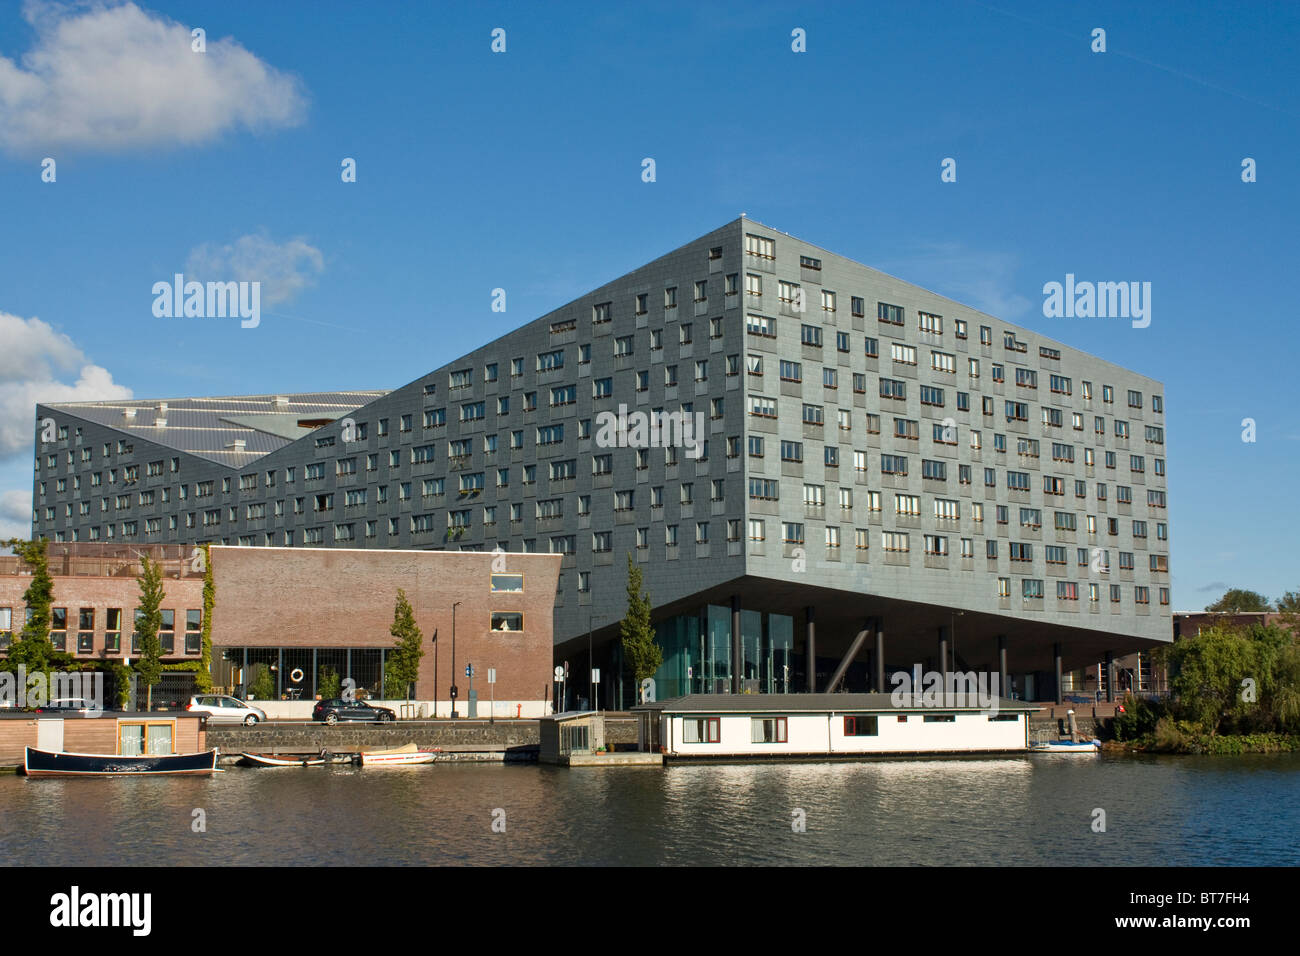 Sphinx or Whale by Frits van Dongen, modern architecture in Amsterdam Eastern Docklands Stock Photo